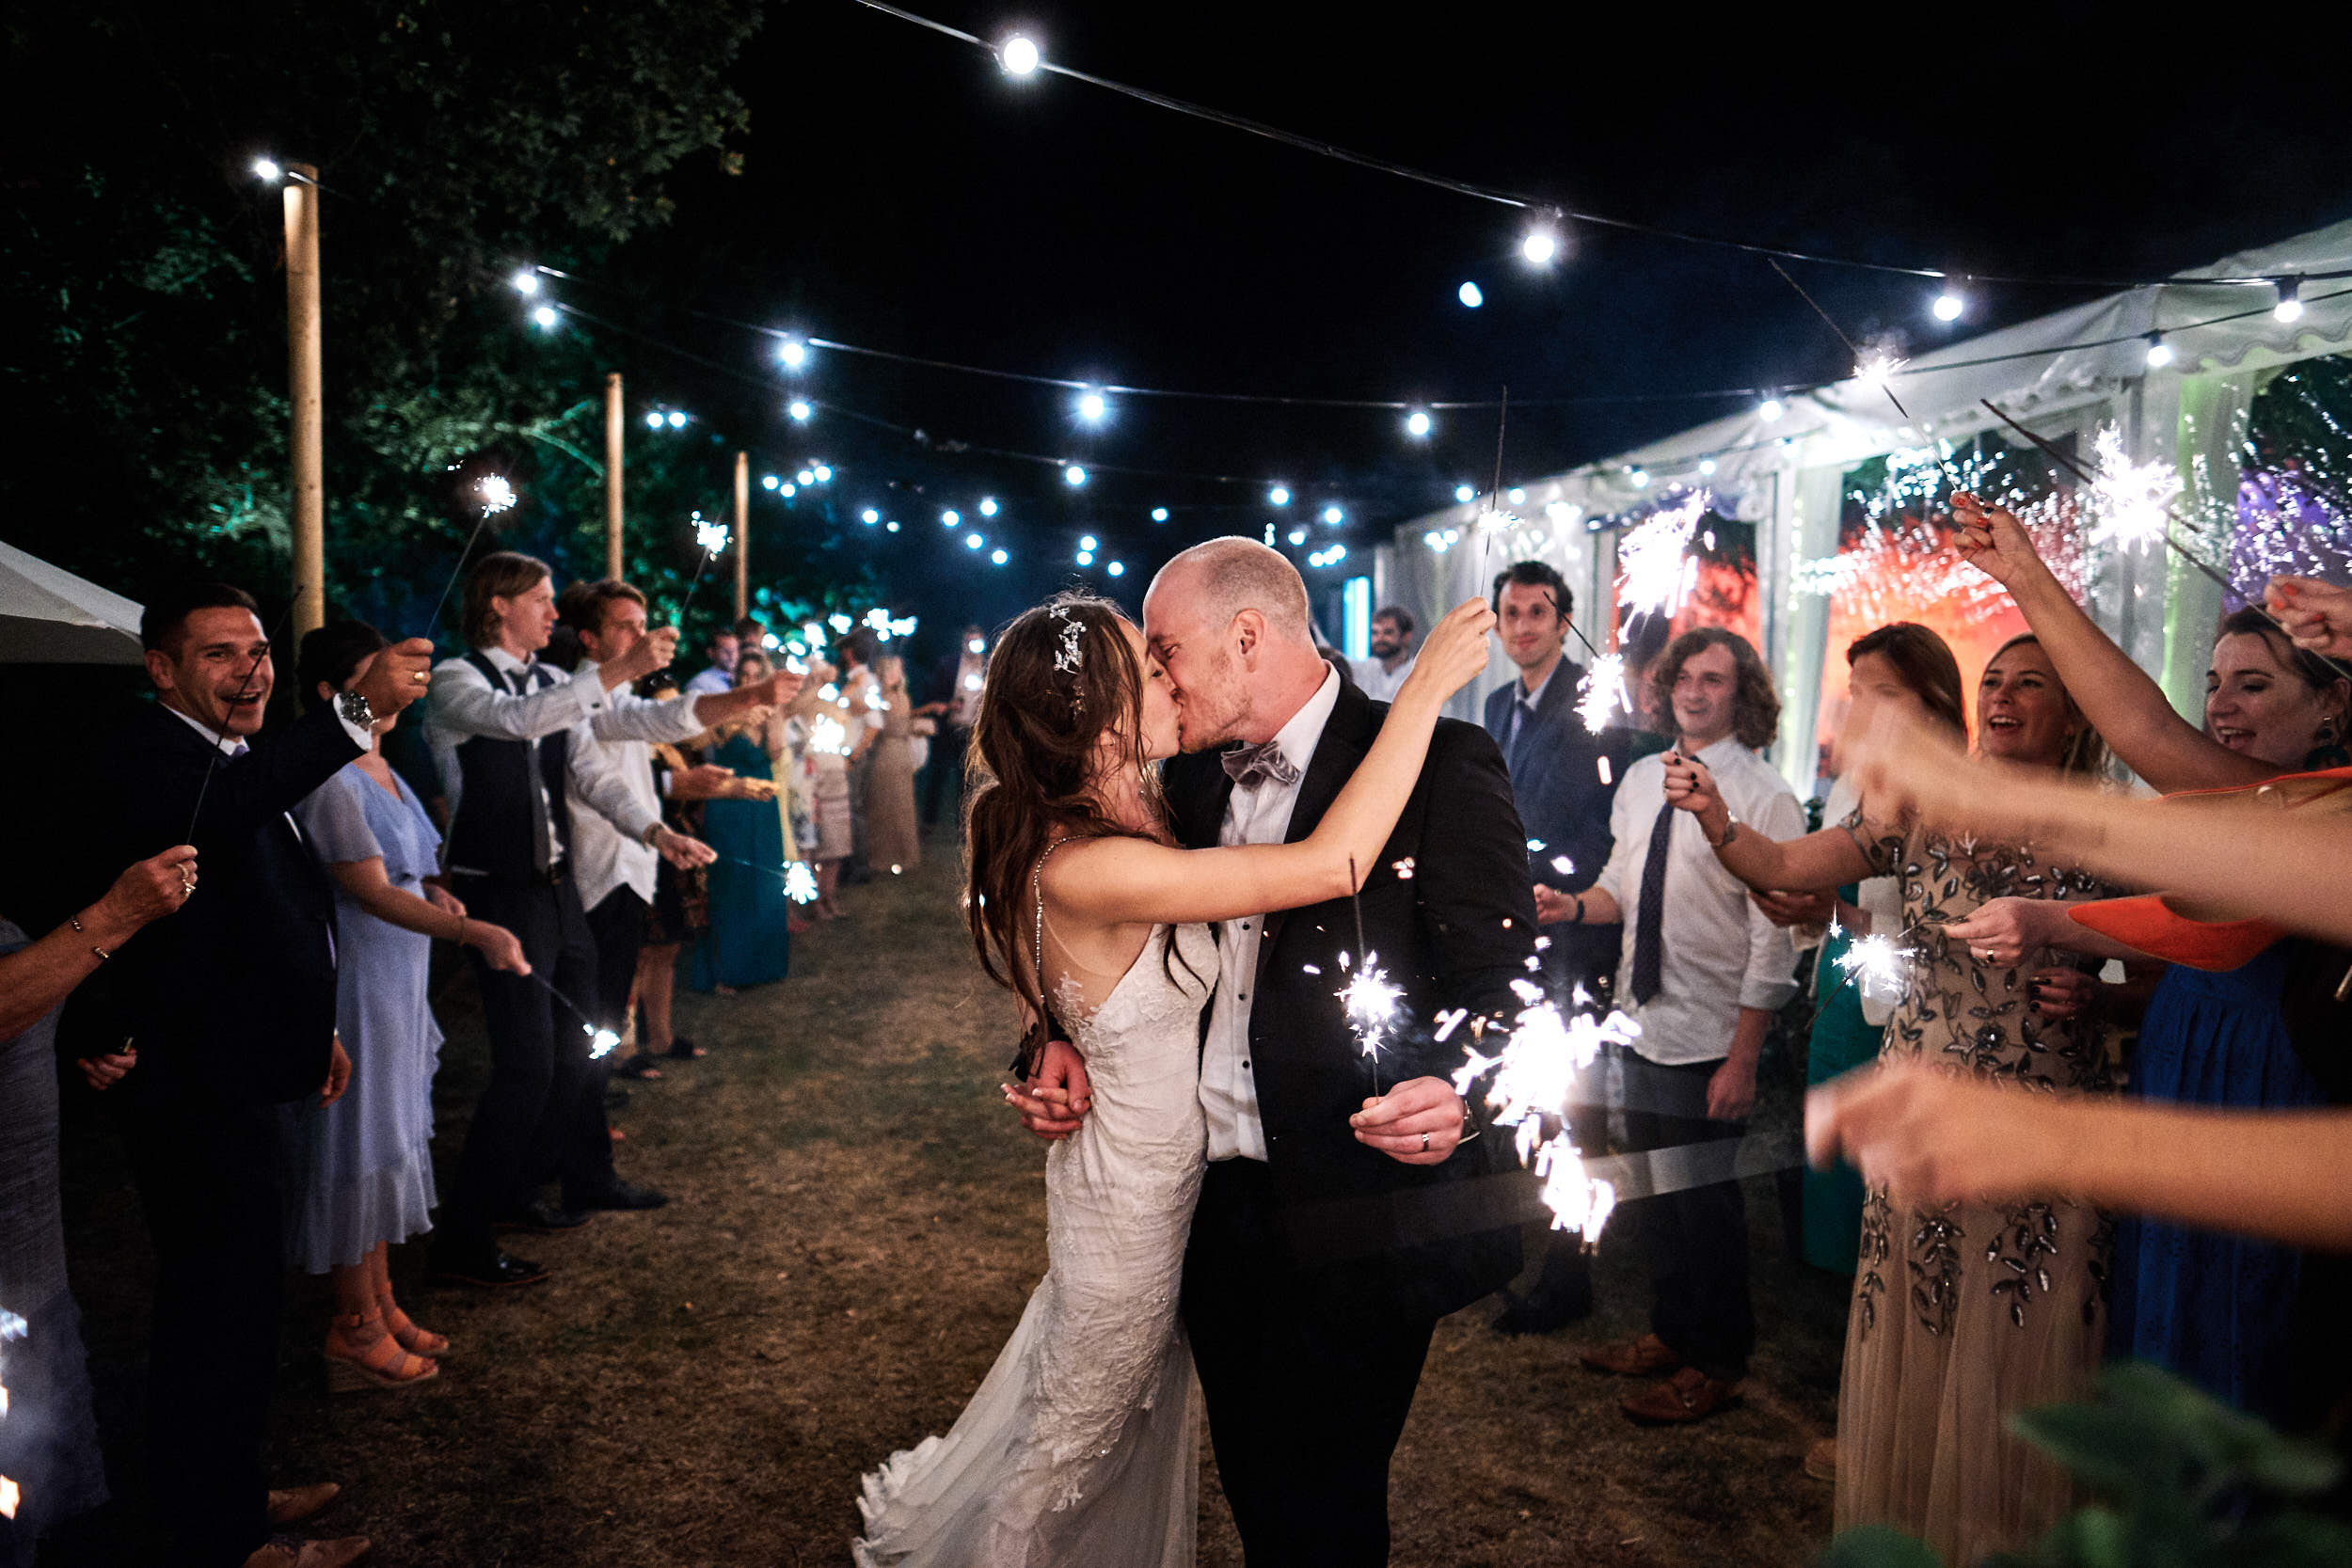 Documentary wedding photo of a couple holding sparklers in 2020